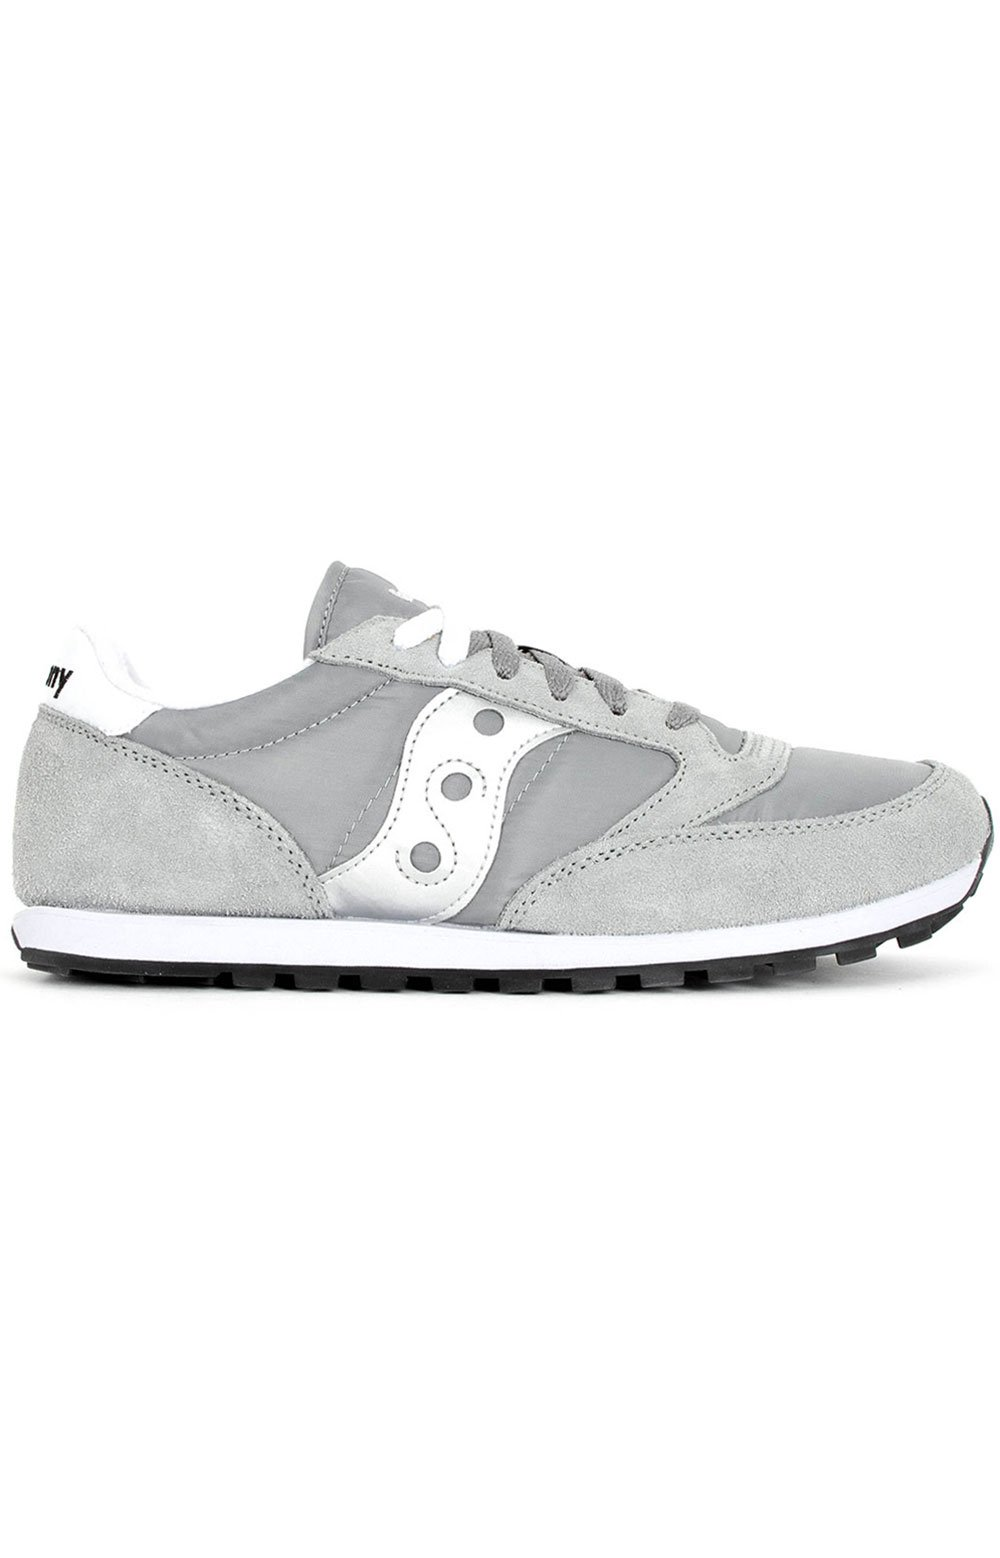 Jazz Low Pro Shoe - Grey/Silver